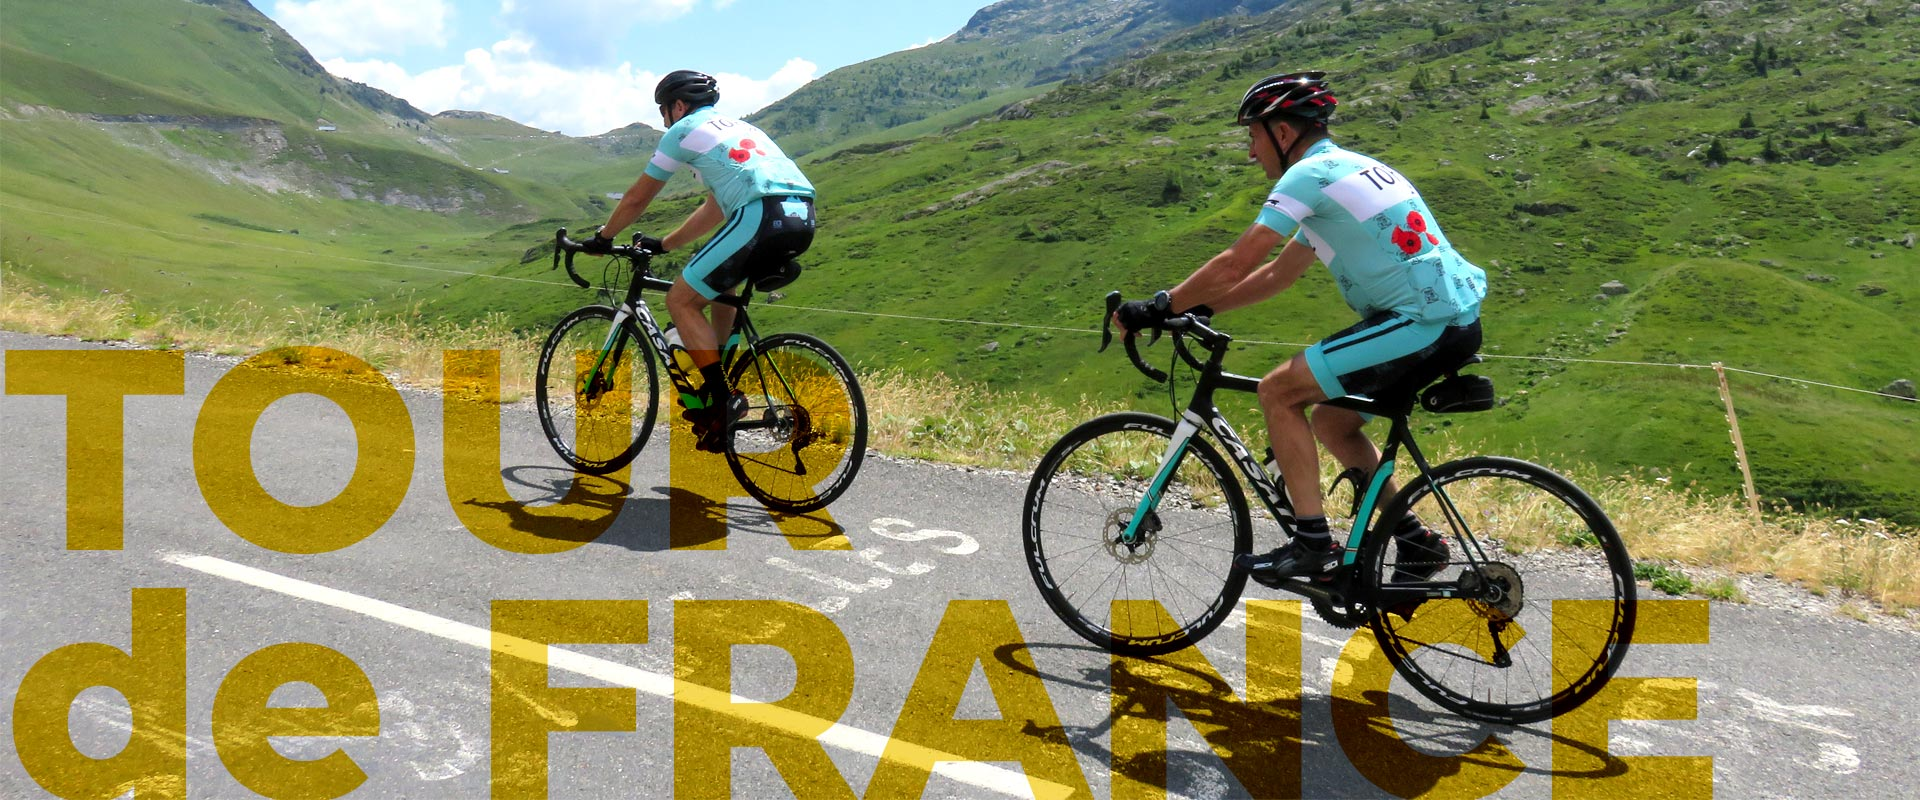 Tour de France 2020 Ride All the Climbs - Pyrenees to The French Alps, Toulouse to Grenoble with Topbike Tours